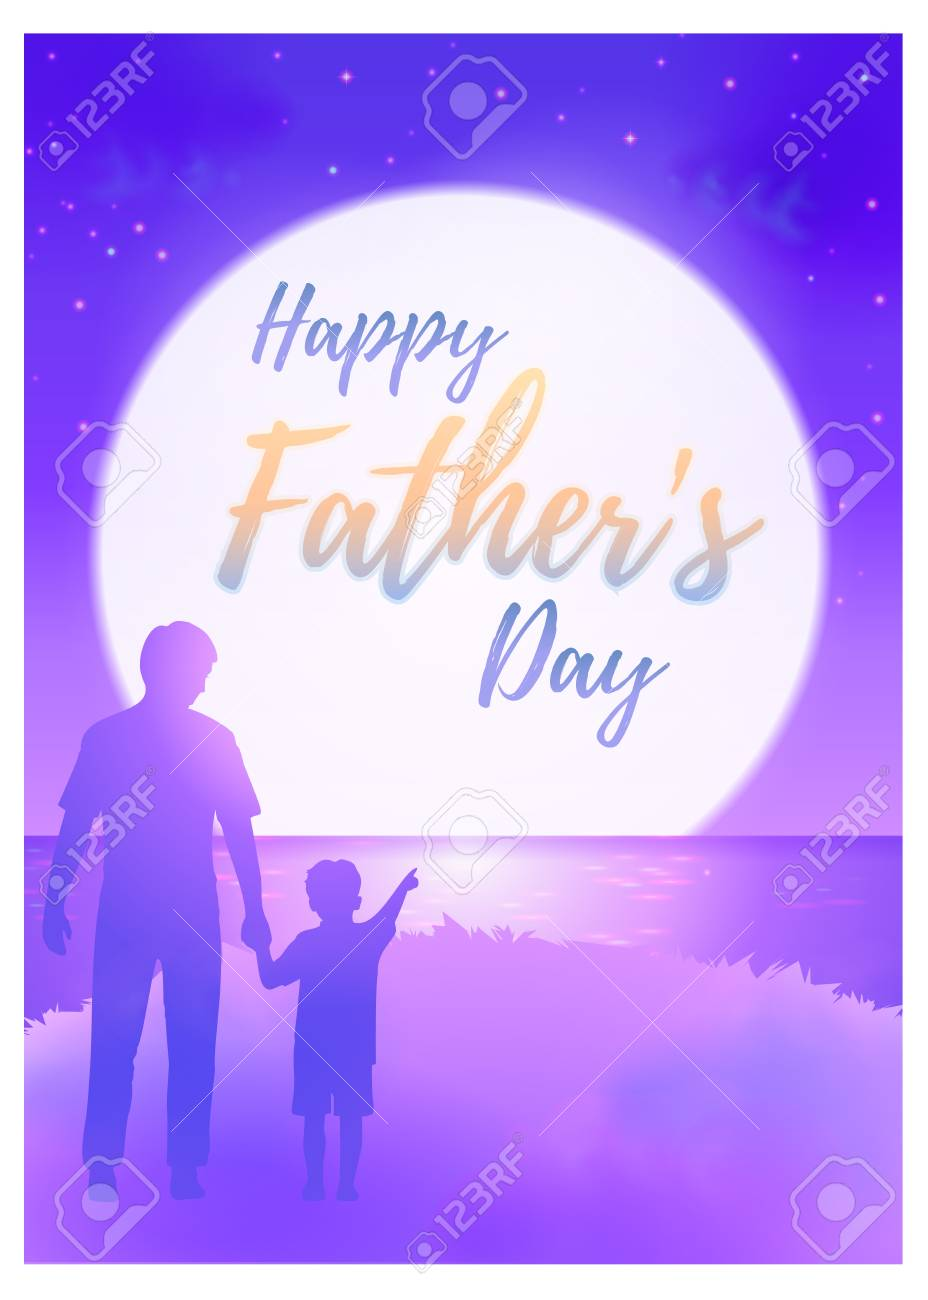 Happy Fathers Day Greeting Card With Calligraphy Text On The